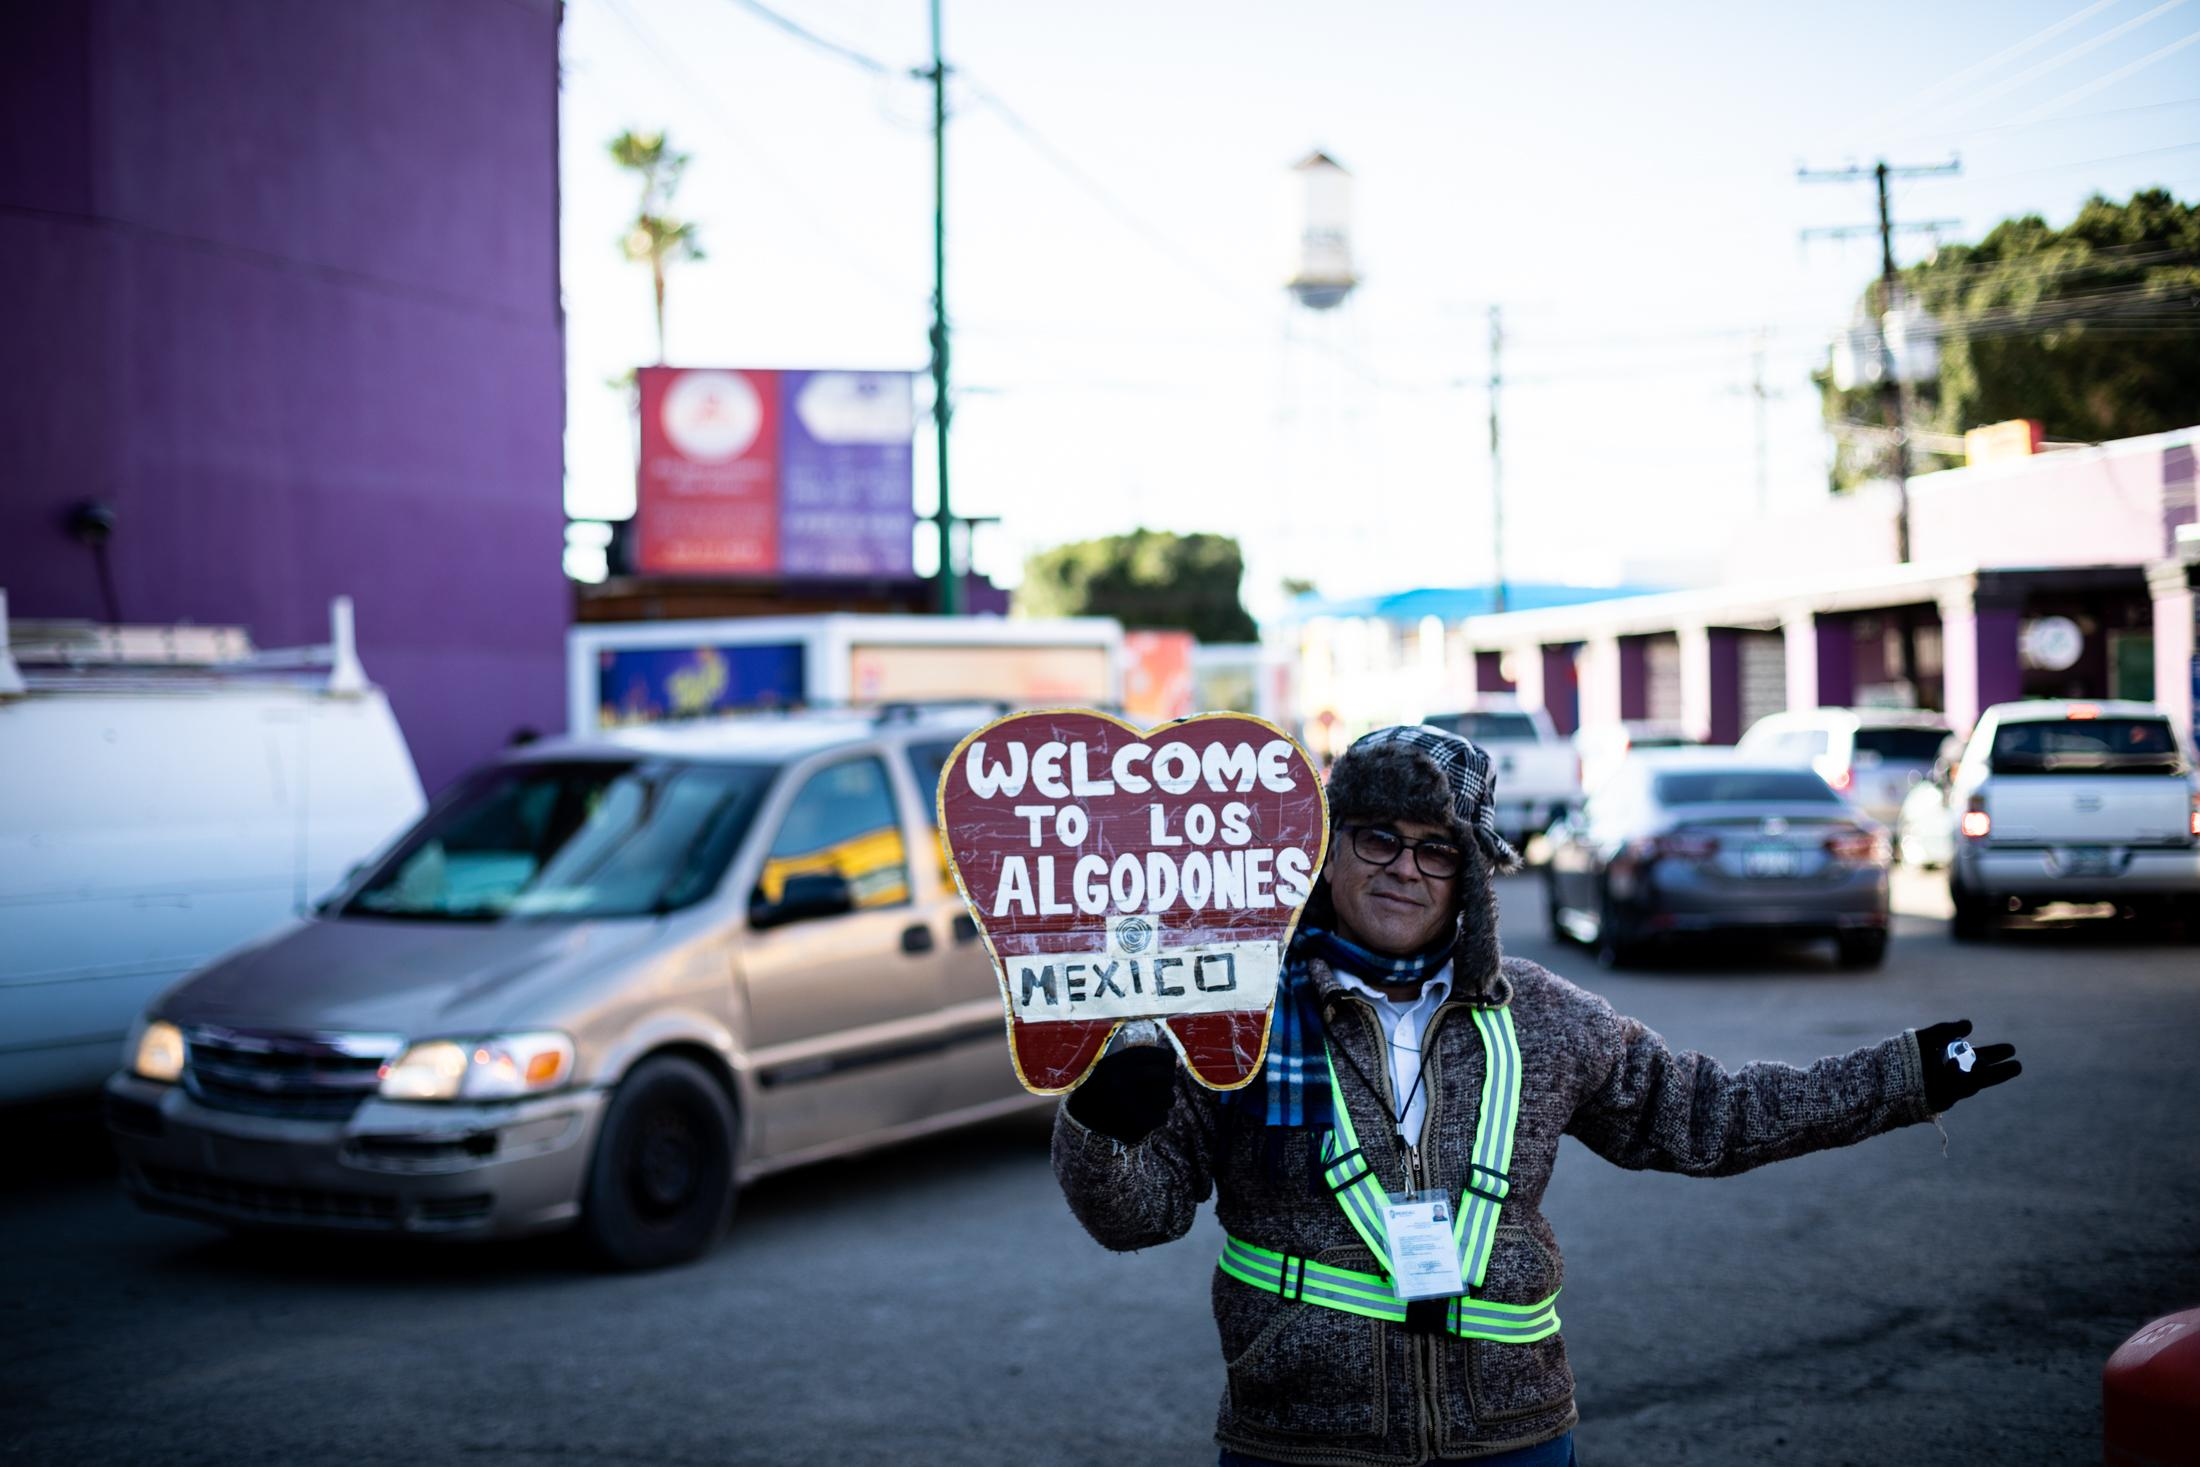 At the arrival in Los Algodones, right after border inspection, pickers welcome the tourists and offer to take them pharmacies, dental clinics or opticians. The town's economy is centered around a three-four blocks area.